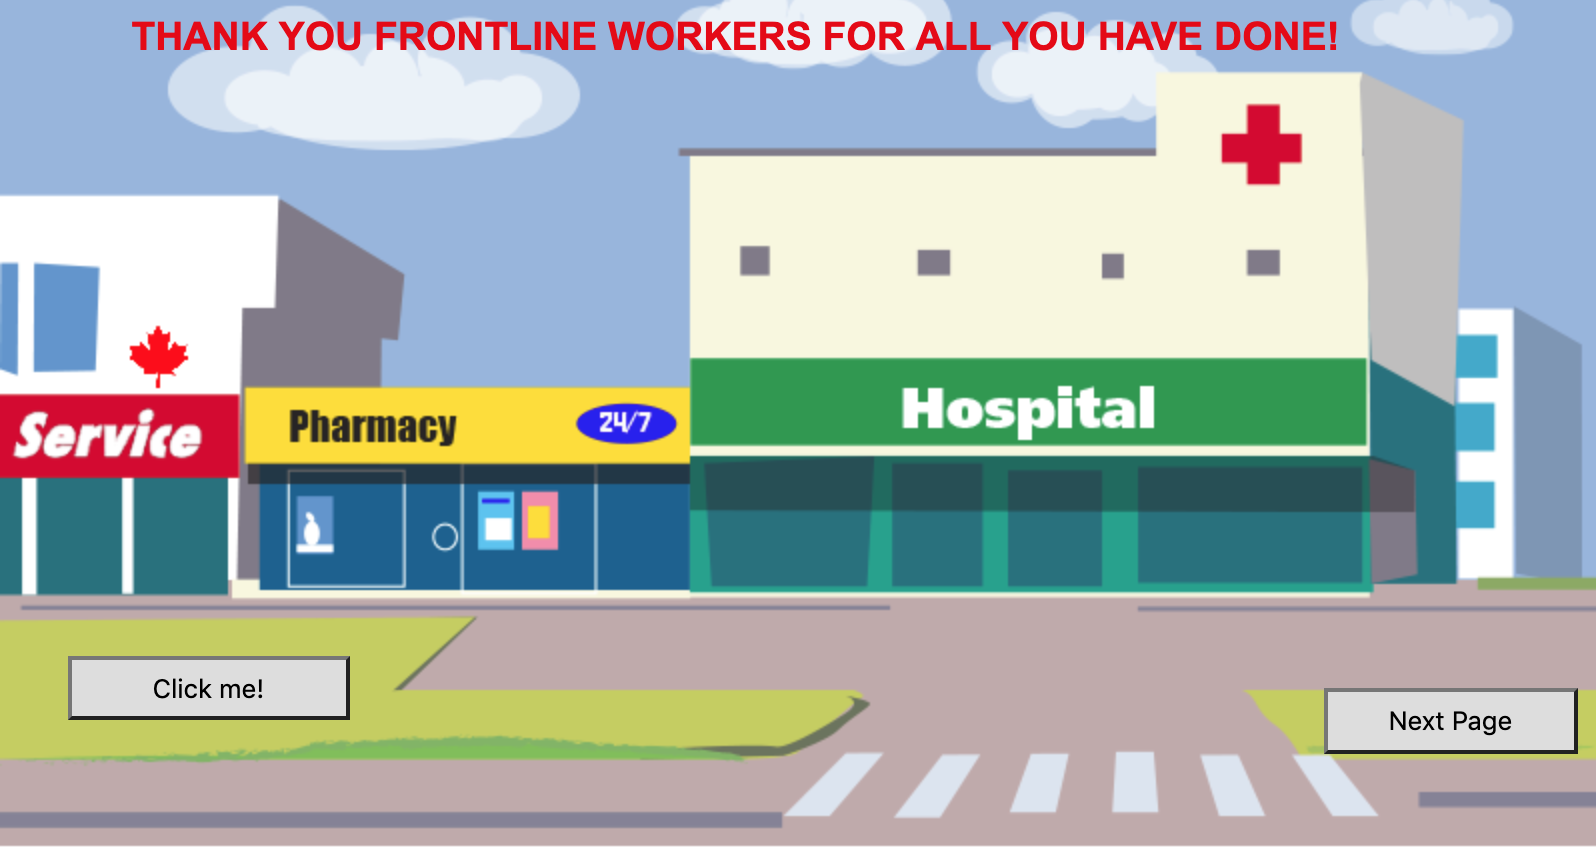 Thank You Frontline workers card